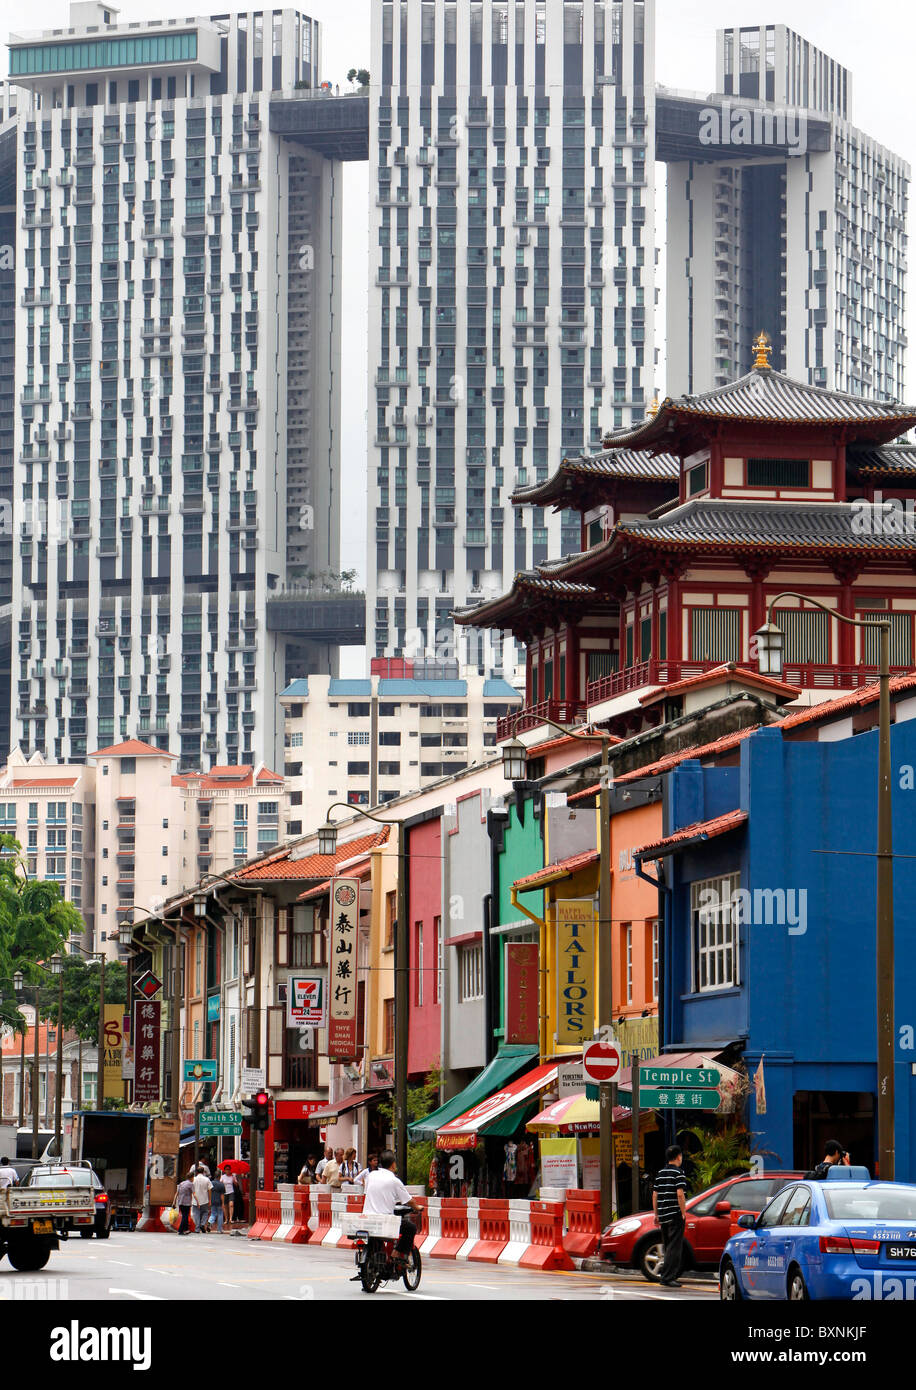 Singapore: Buddha Tooth Relic Temple (middle right) in China Town - Stock Image